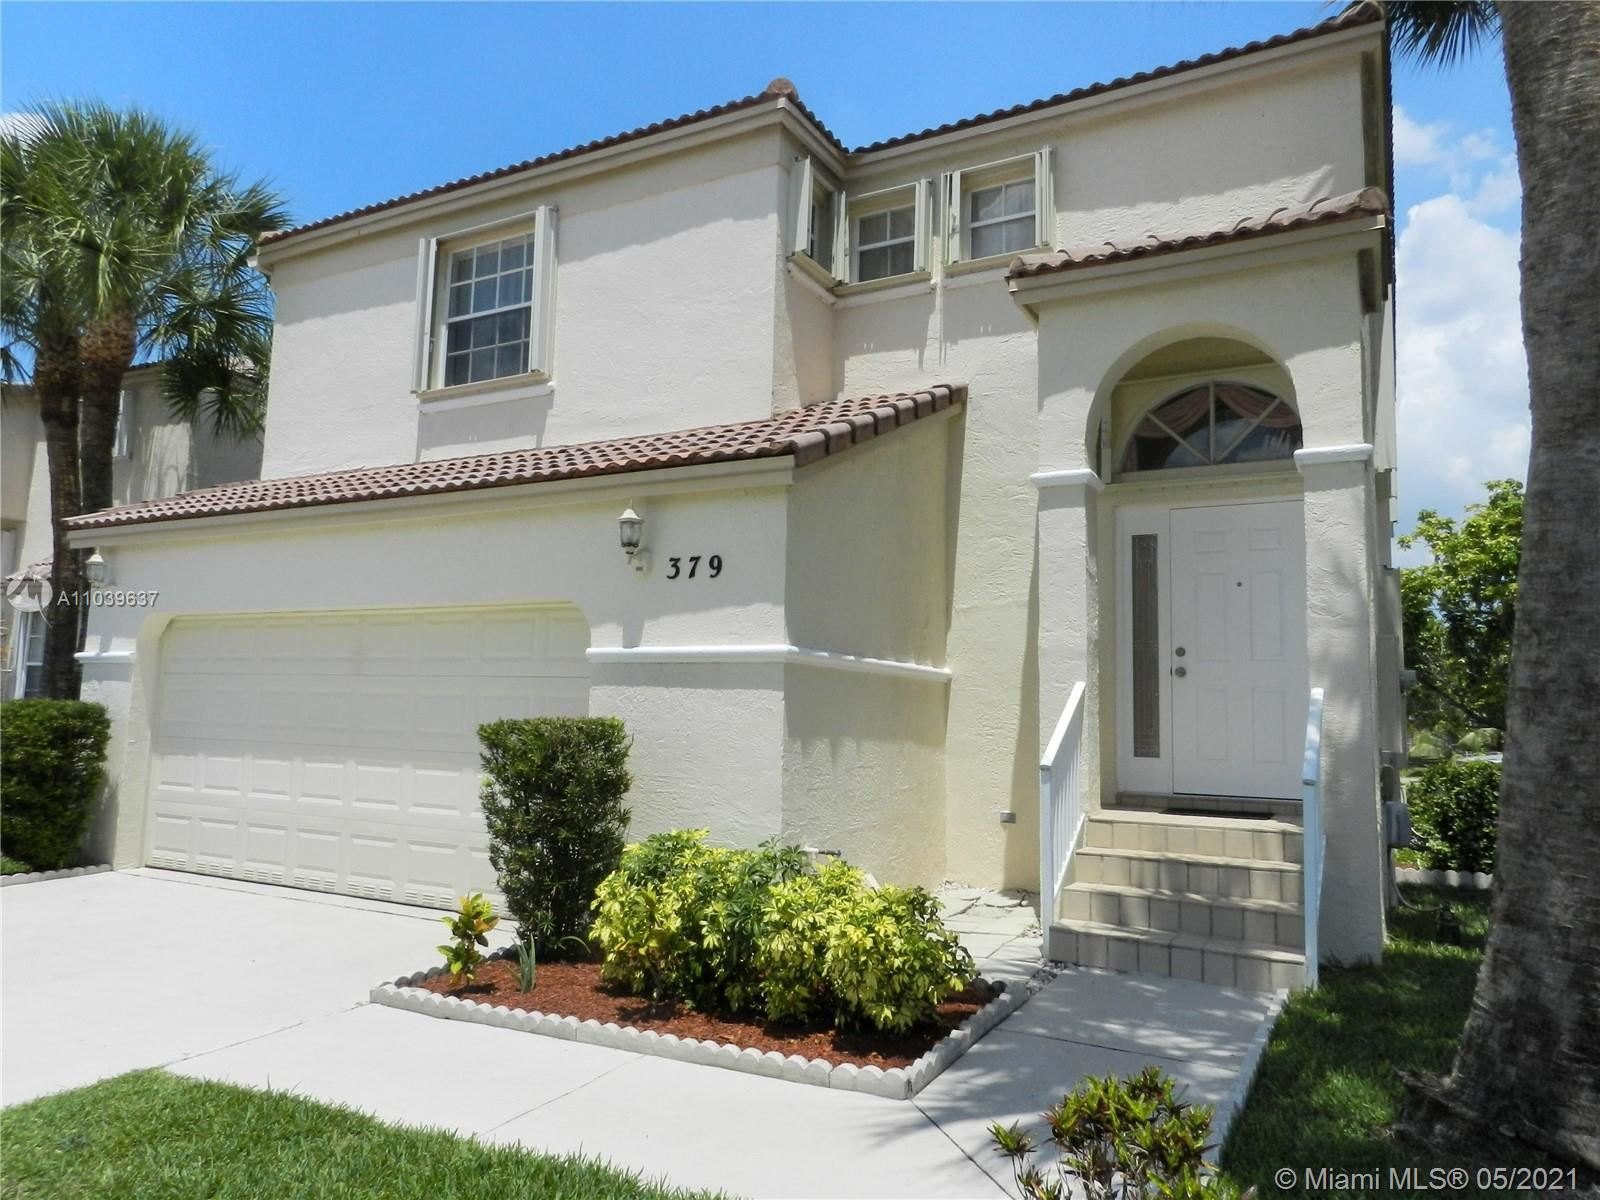 Photo of 379 NW 153rd Ave, Pembroke Pines, FL 33028 (MLS # A11039637)